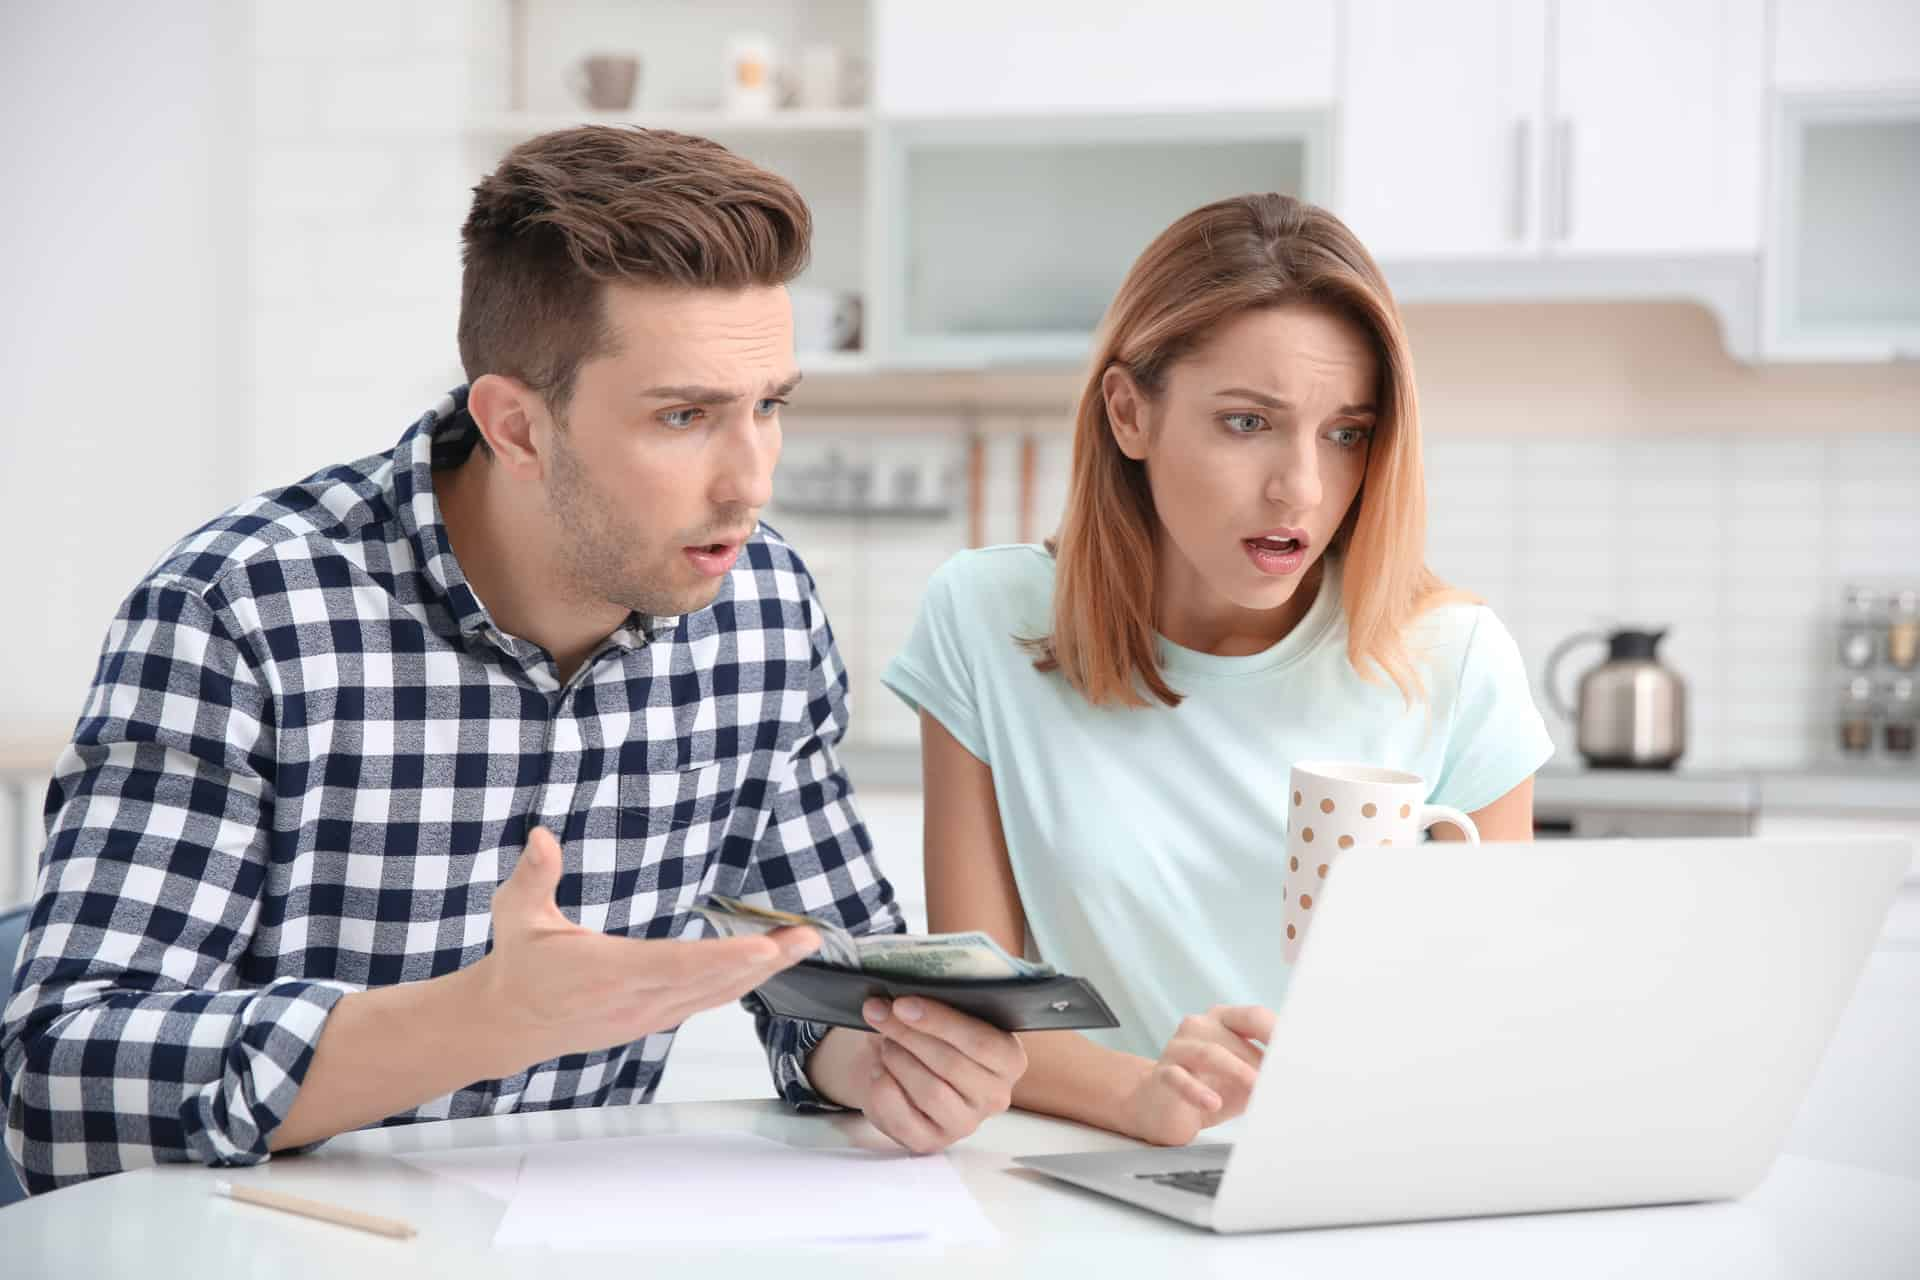 Young man holding wallet next to a woman holding a coffee cup while both are upset while looking at a computer screen